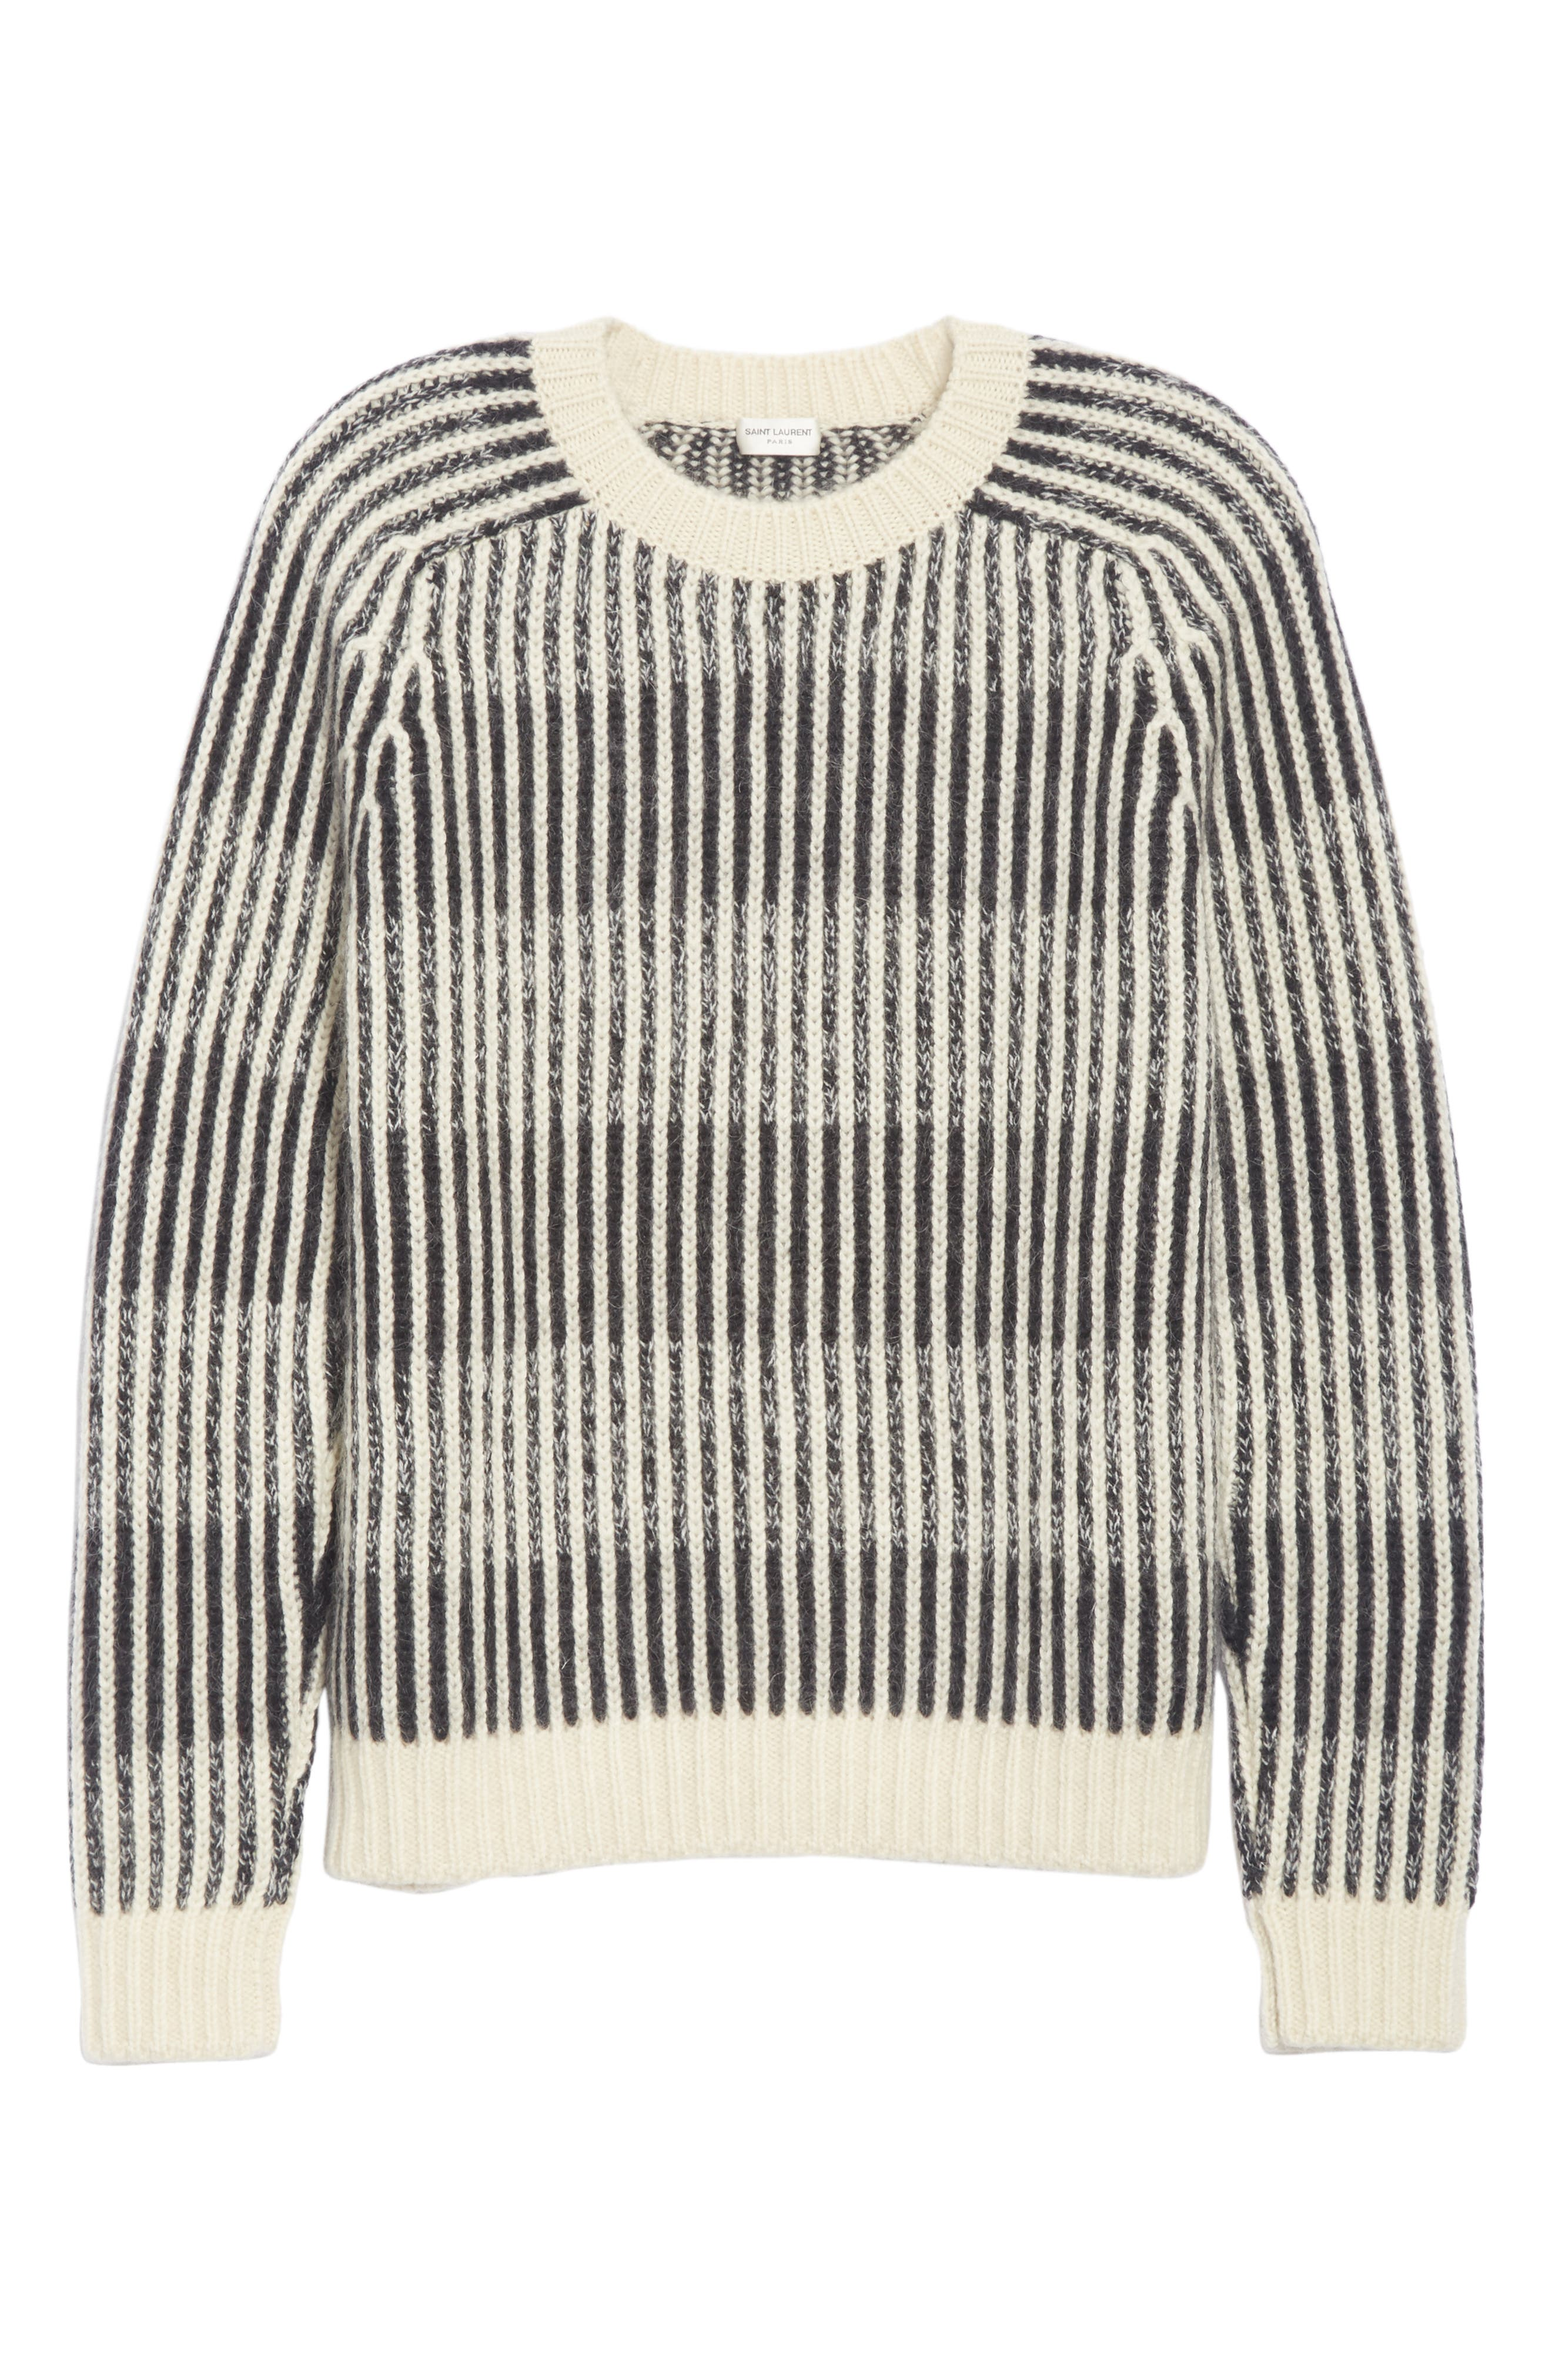 SAINT LAURENT,                             Contrast Rib Wool & Alpaca Blend Sweater,                             Alternate thumbnail 6, color,                             134